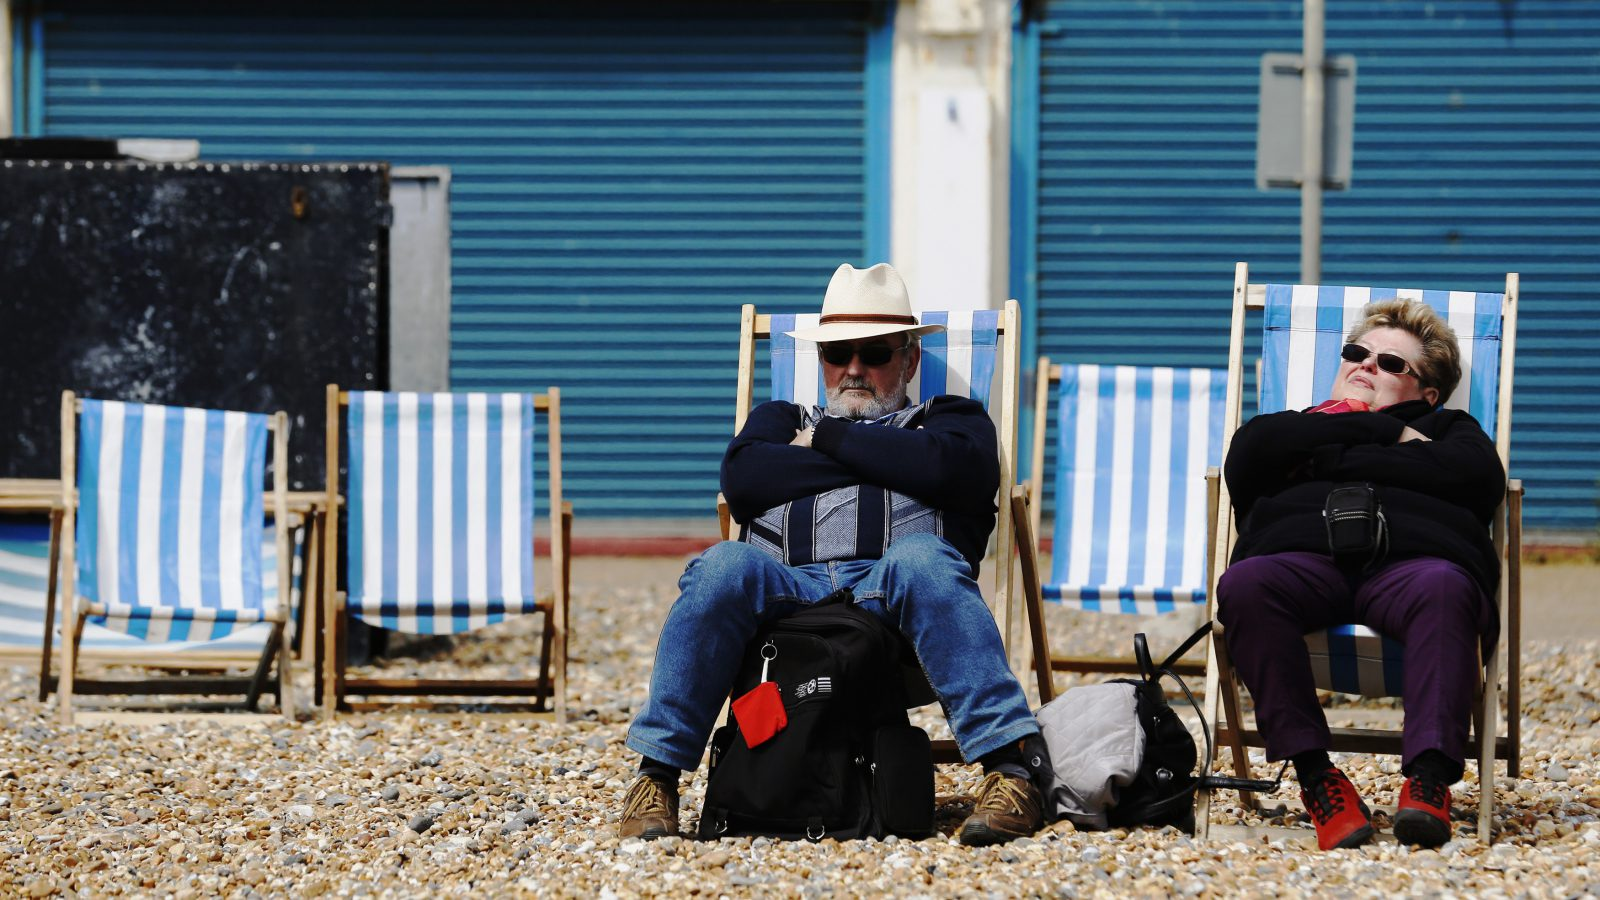 An elderly couple sits on deck chairs on a cool afternoon on Brighton Beach at Brighton, in southern England June 14, 2013. REUTERS/Luke MacGregor (BRITAIN - Tags: SOCIETY TRAVEL ENVIRONMENT TPX IMAGES OF THE DAY) - RTX10NTH